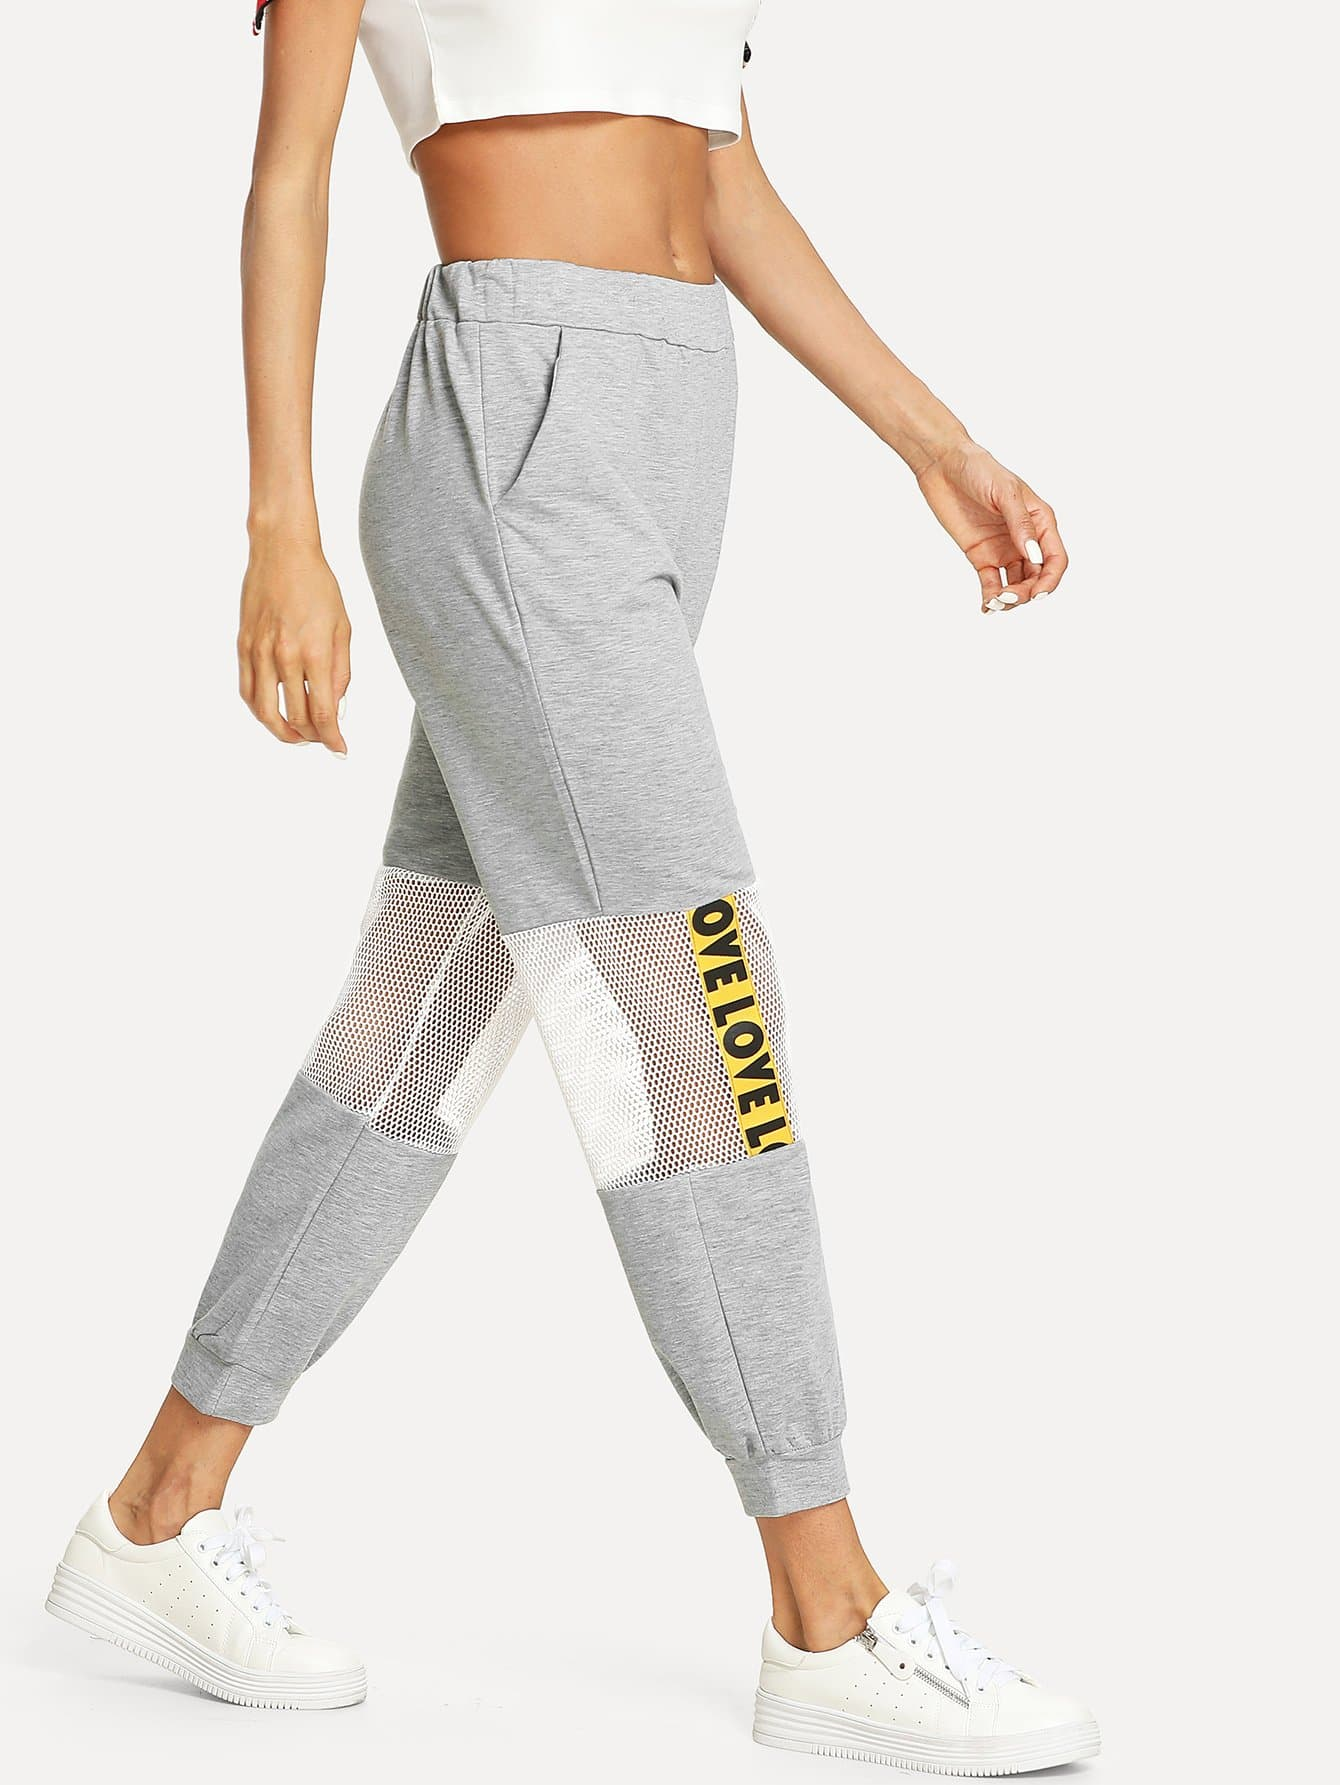 Contrast Fishnet Letter Tape Sweatpants genuine brand new qy6 0070 printhead print head for canon mp510 mp520 mx700 ip3300 ip3500 printer